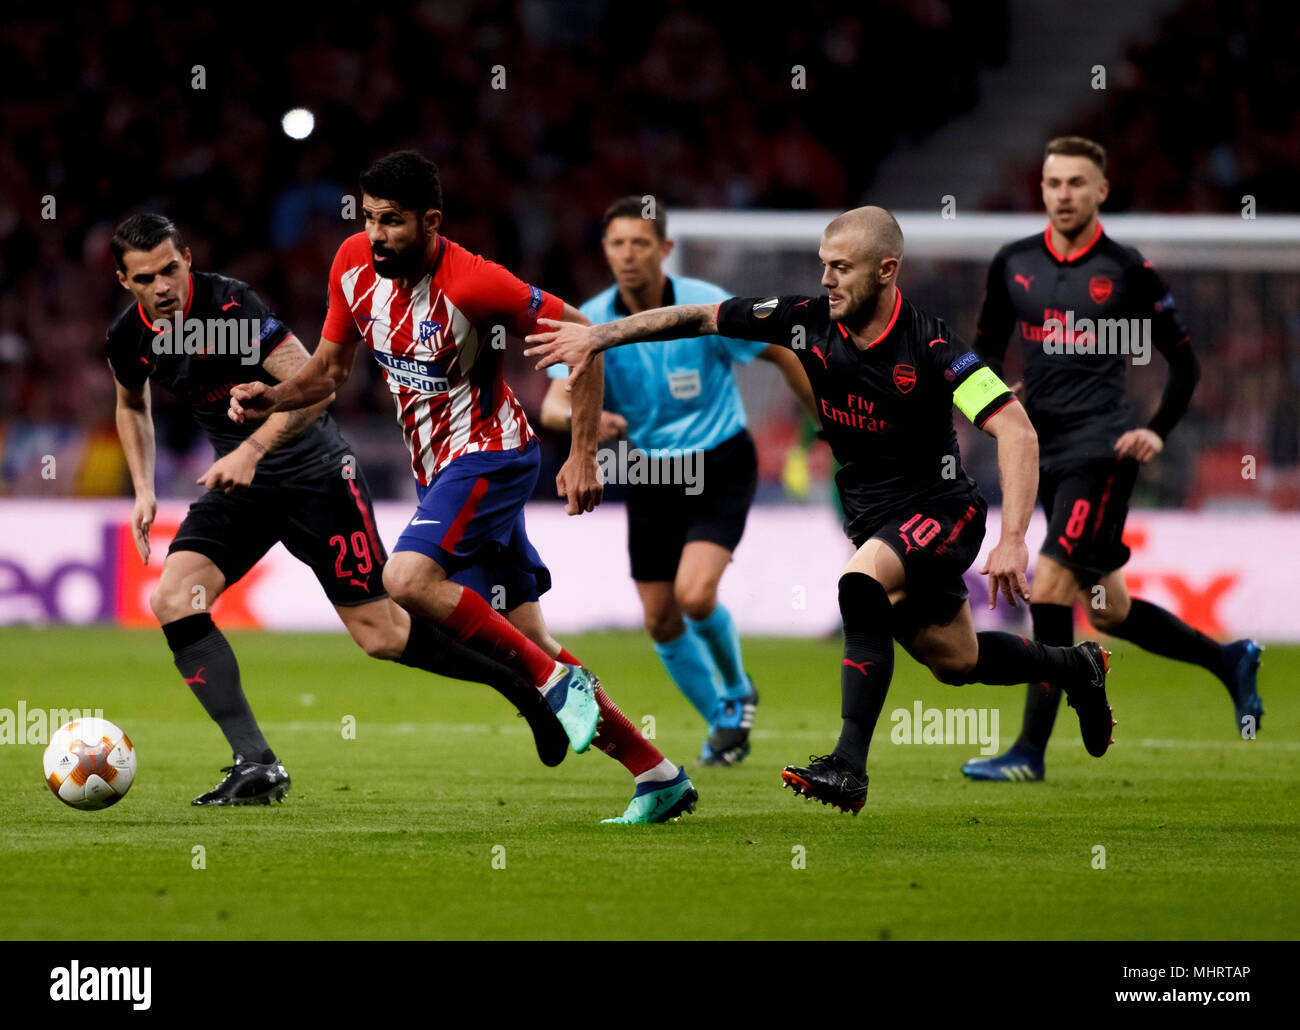 Diego Costa of Atletico de Madrid and  Jack Wilshere of Arsenal during the UEFA Europe League 2017/18 Semi final second leg match between Atletico de Madrid and Arsenal at Wanda Metropolitano Stadium in Madrid on May 3, 2018. (Photo by Guille Martinez/Cordon Press) - Stock Image